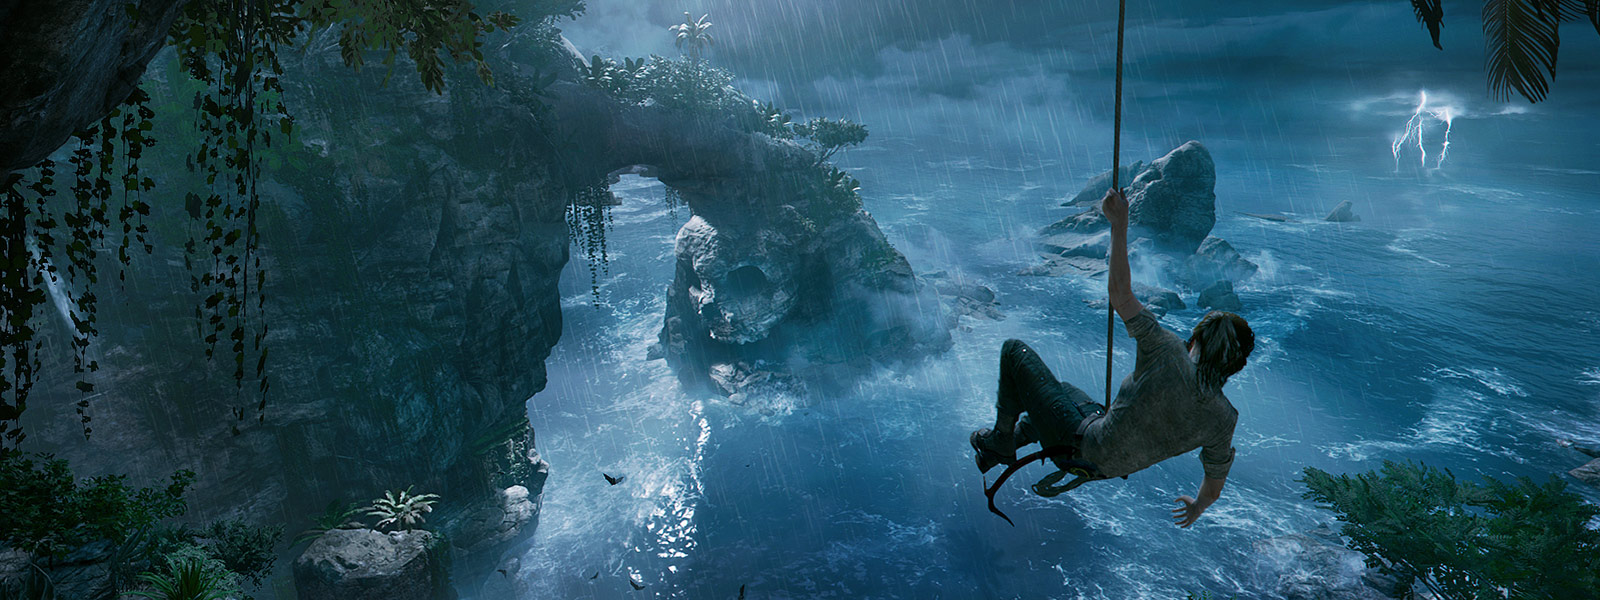 Lara Croft swings from a vine over water on a jungle island